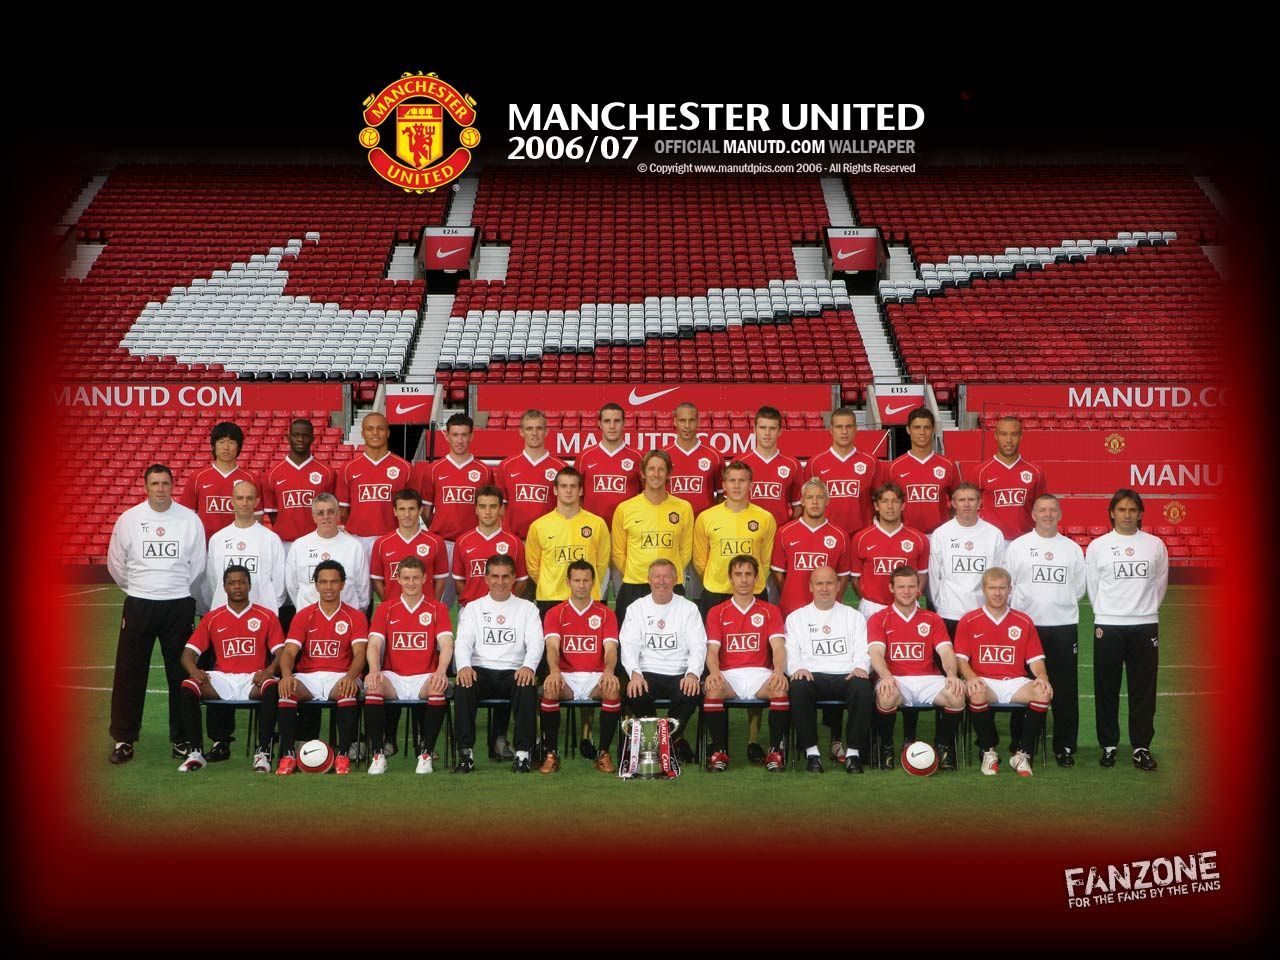 wallpaper picture Manchester United Wallpaper Part1 1280x960